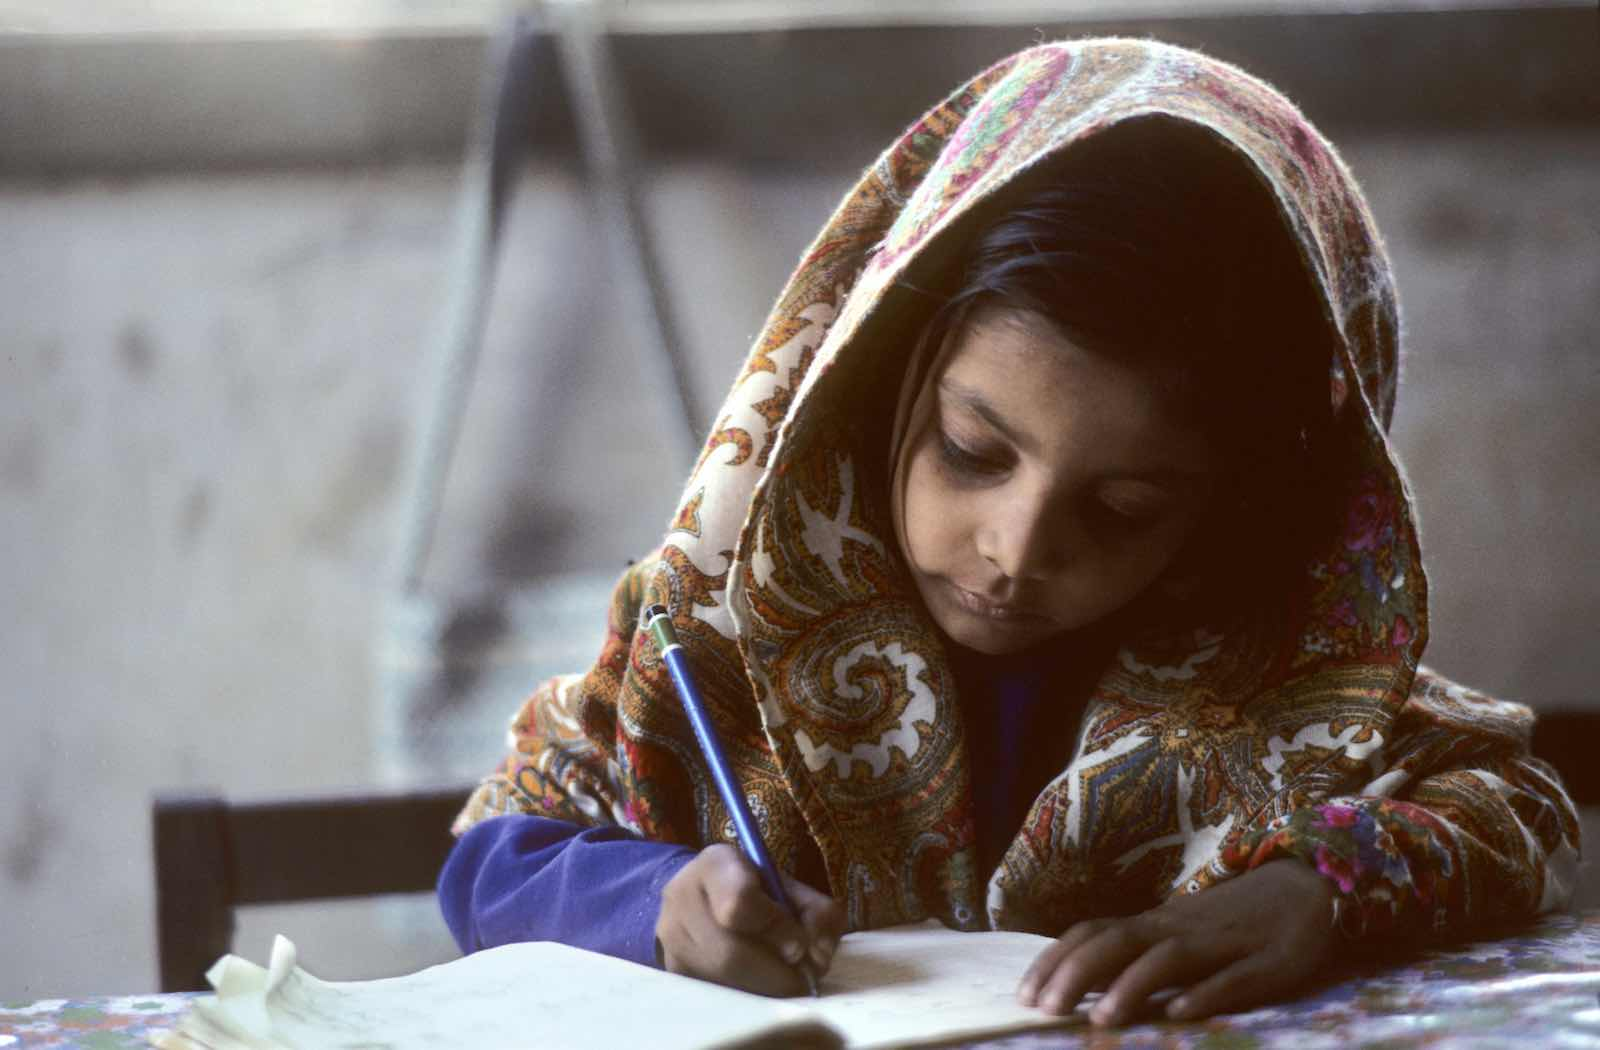 Australian aid supported two million more Pakistani girls going to school yet aid to the country will be eliminated next year (Photo: John Isaac/UN Photo)